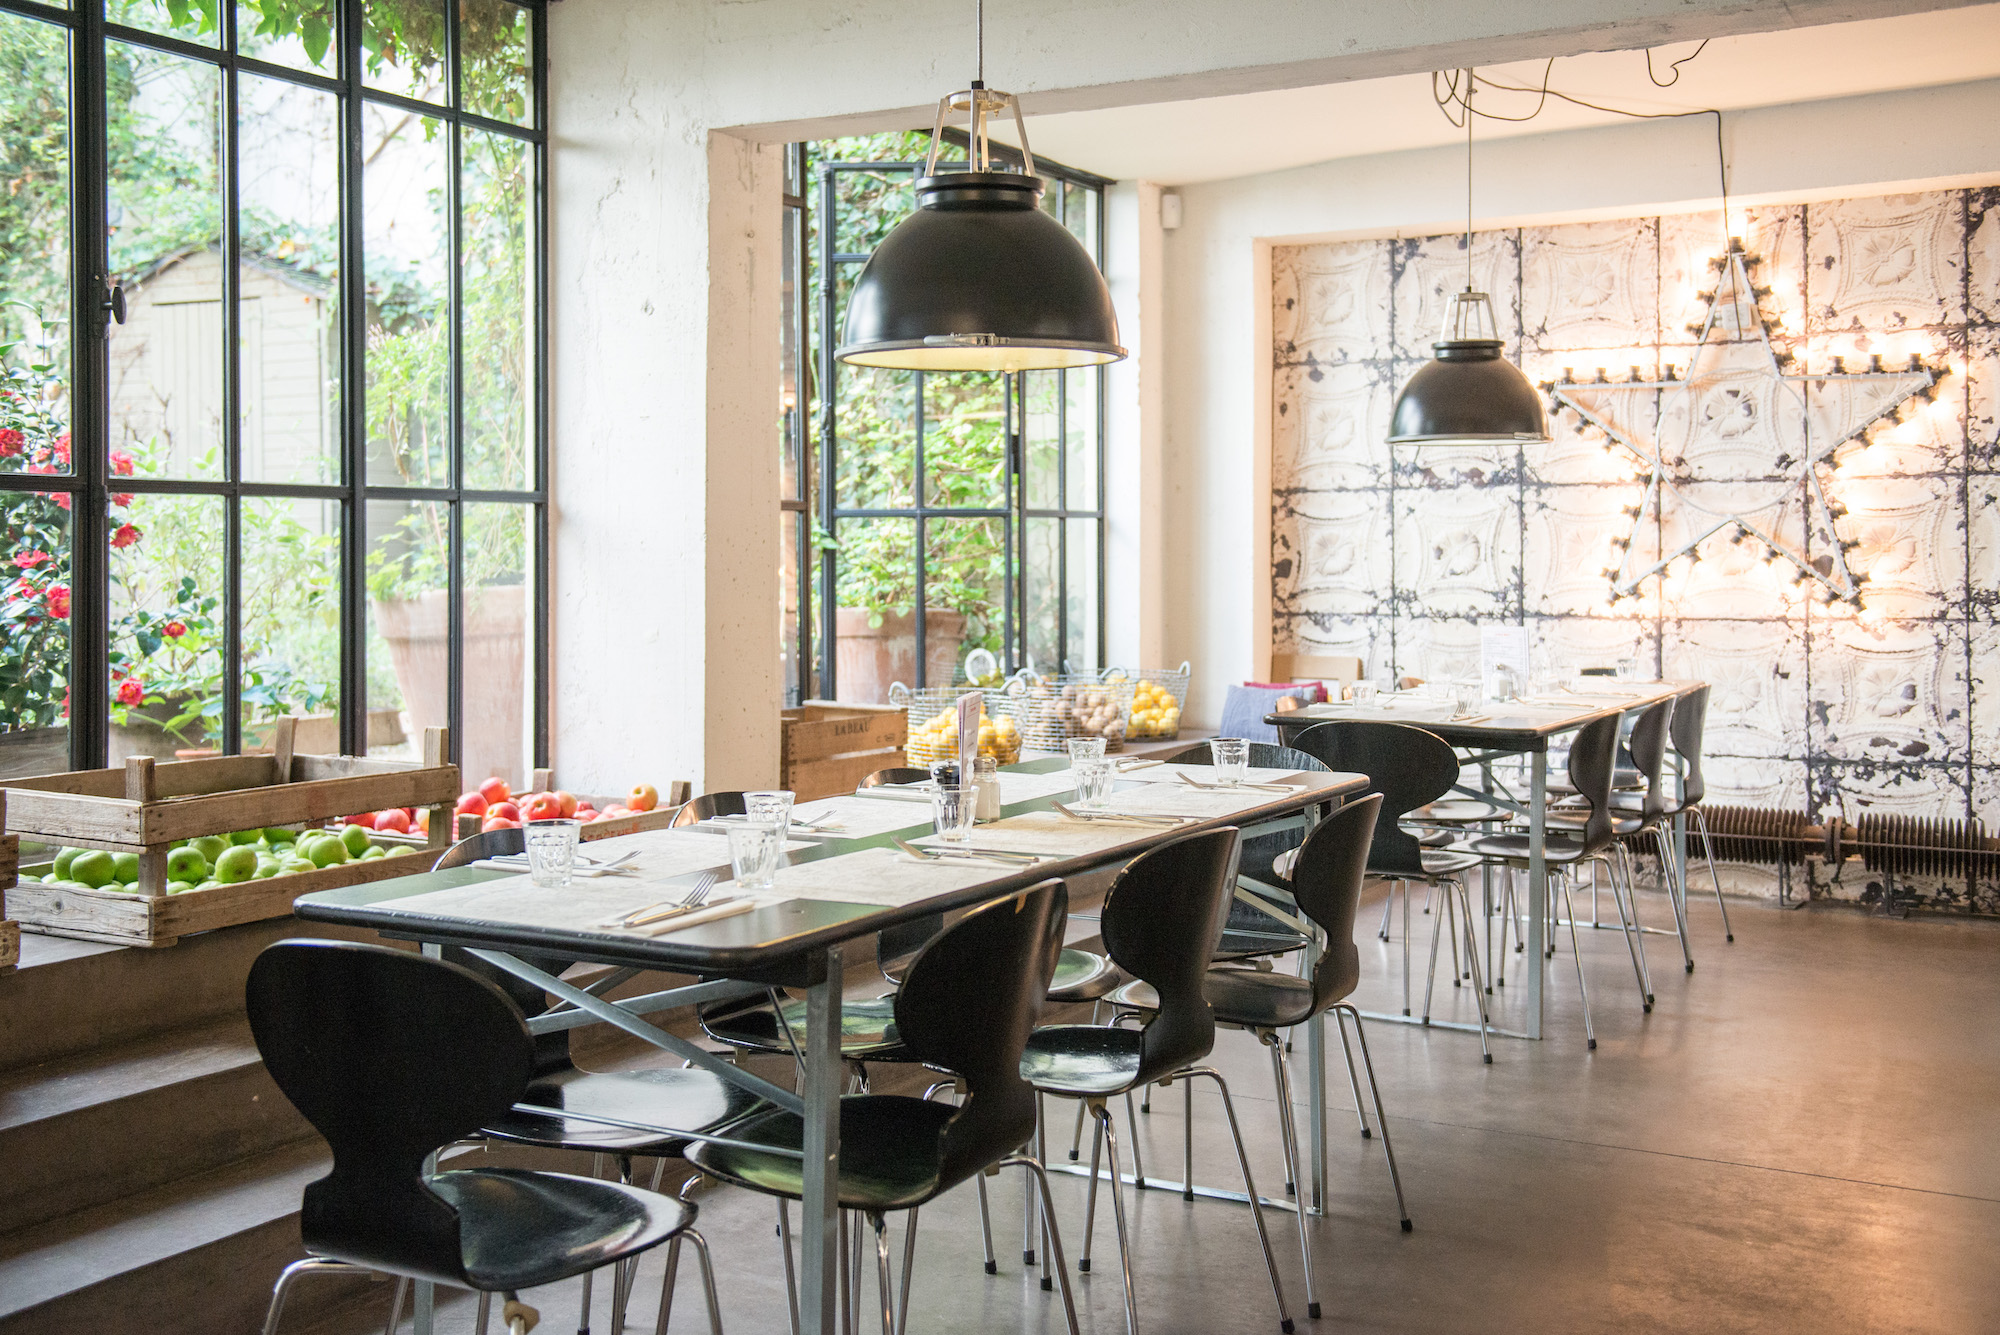 La cantine de merci lunch in paris 39 trendiest concept store hip paris blog hip paris blog - Boutique cuisine paris ...